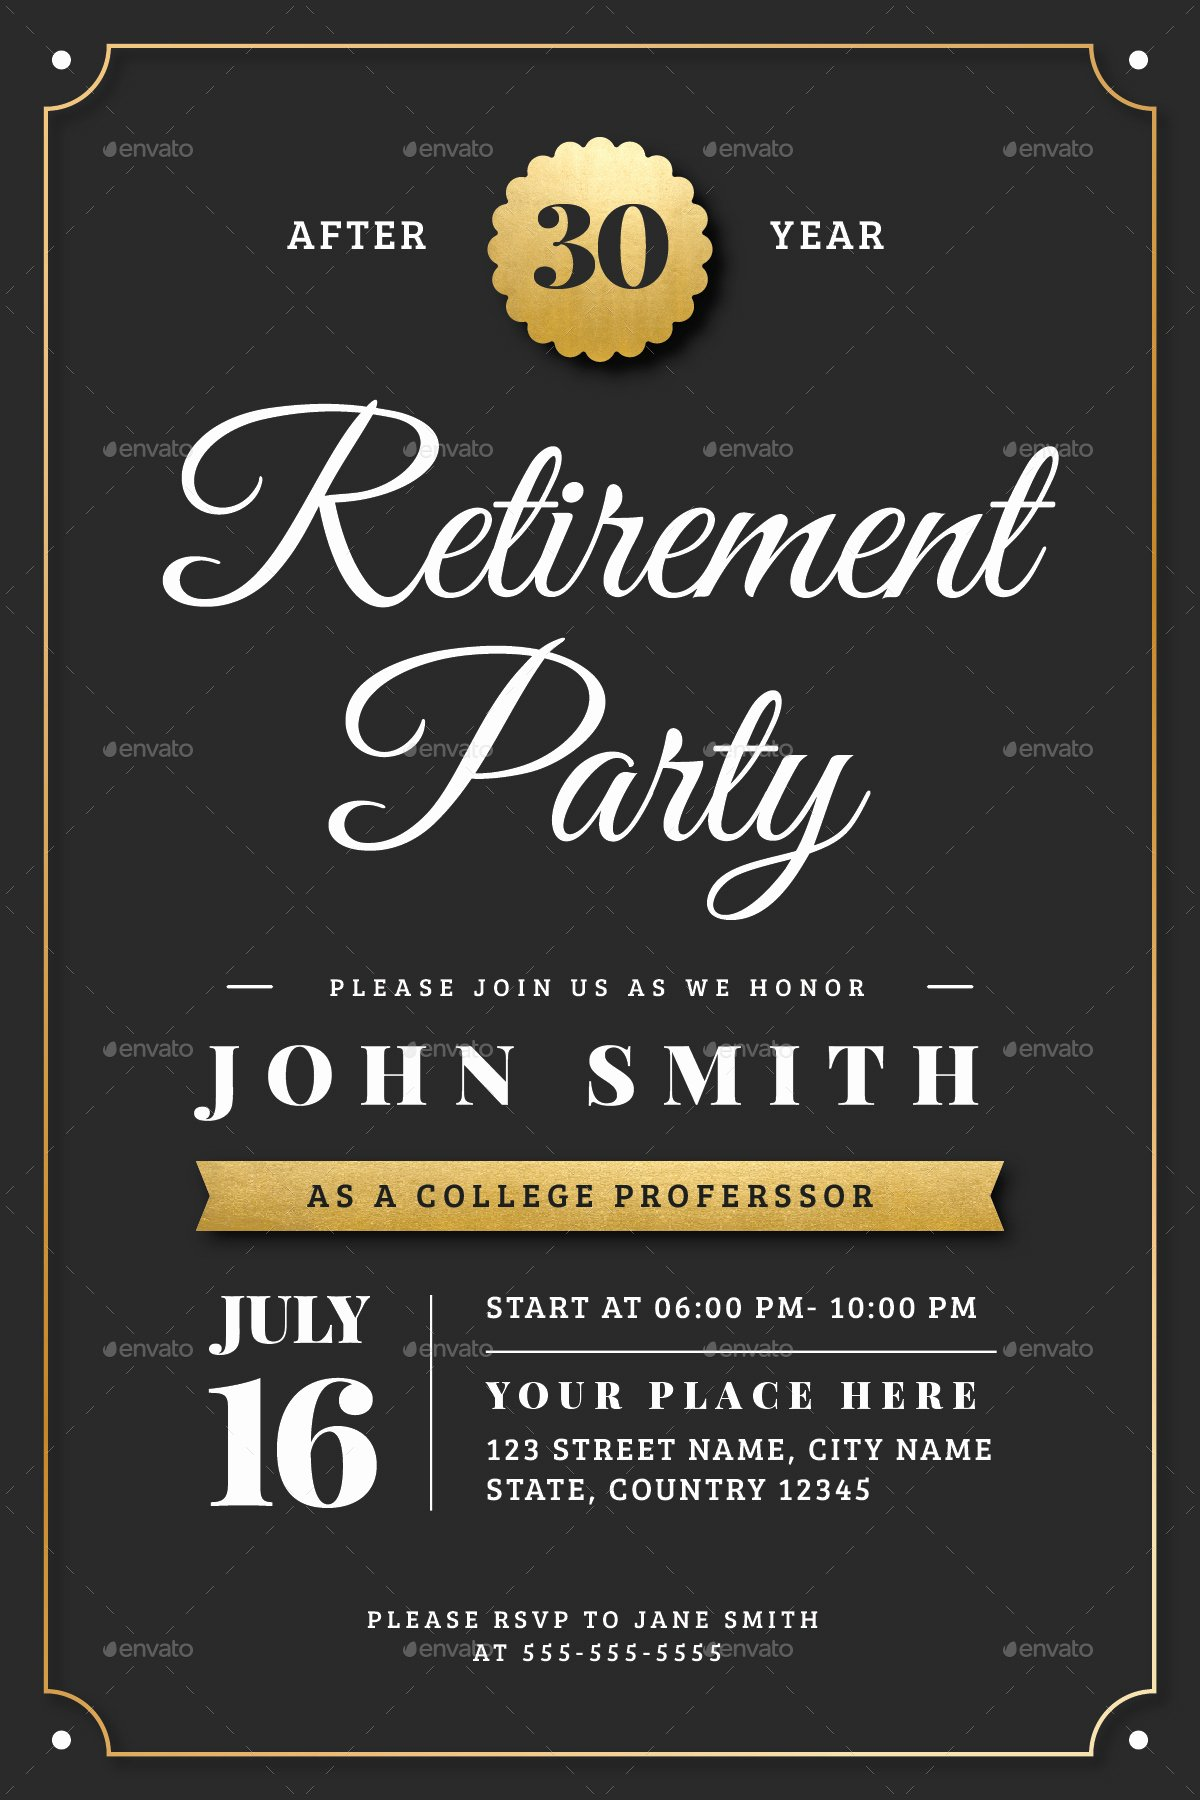 Retirement Flyer Free Template New Gold Retirement Invitation Flyer Templates by Vector